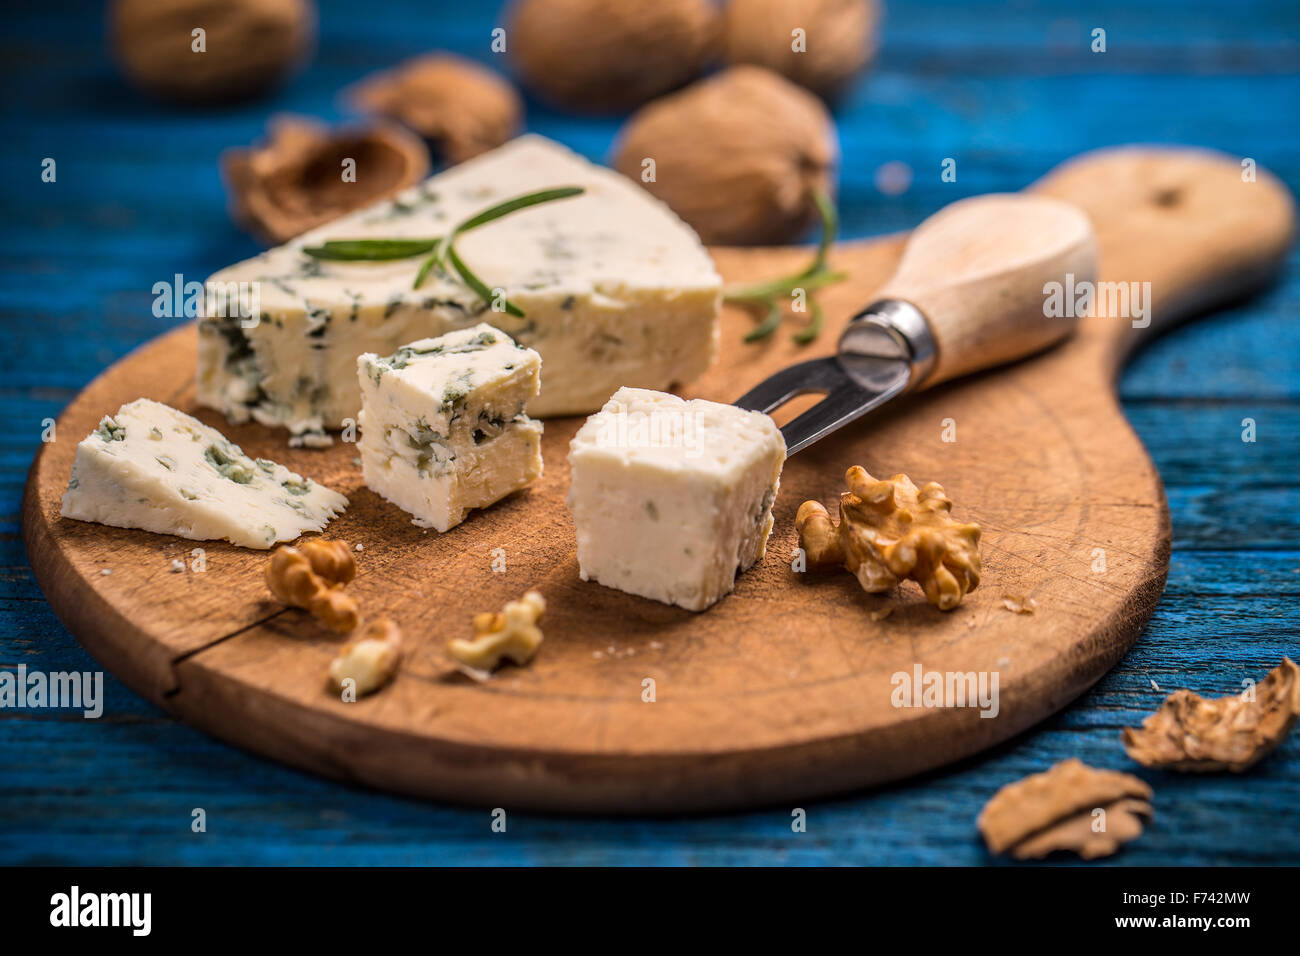 Cheese with mold on wooden cutting board - Stock Image